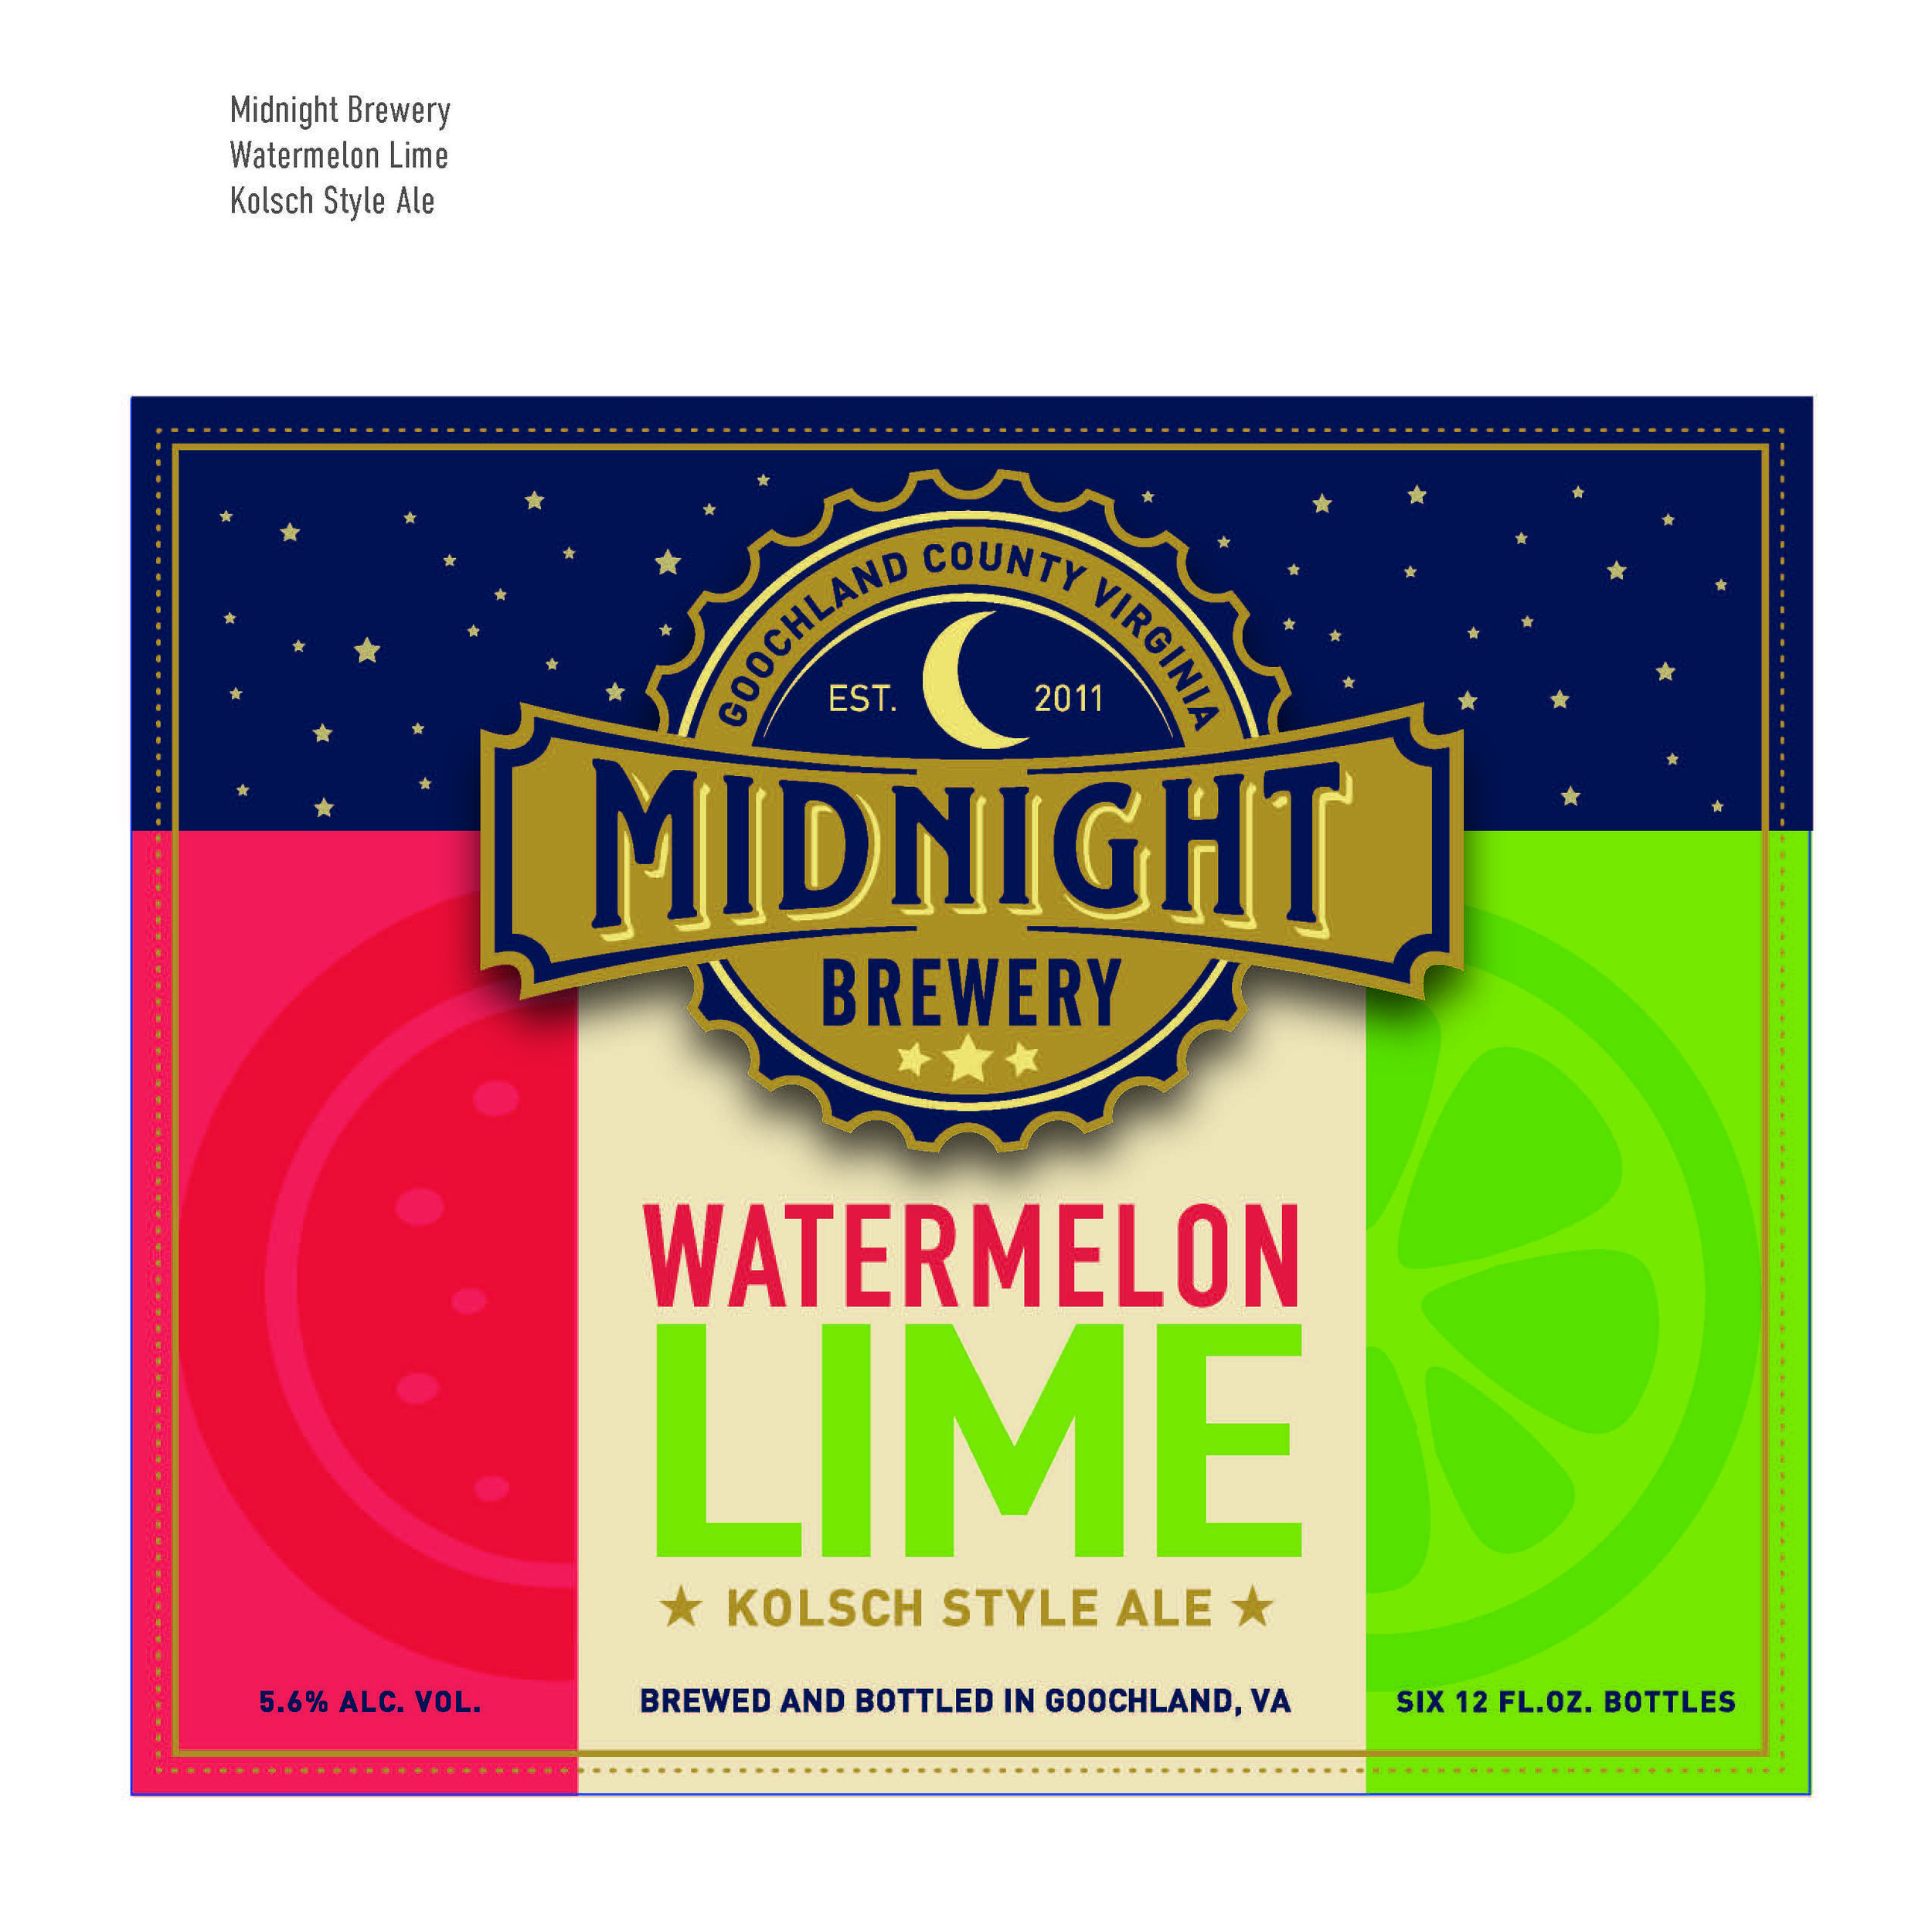 MB-023_WatermelonLime_Carrier Mockup.jpg